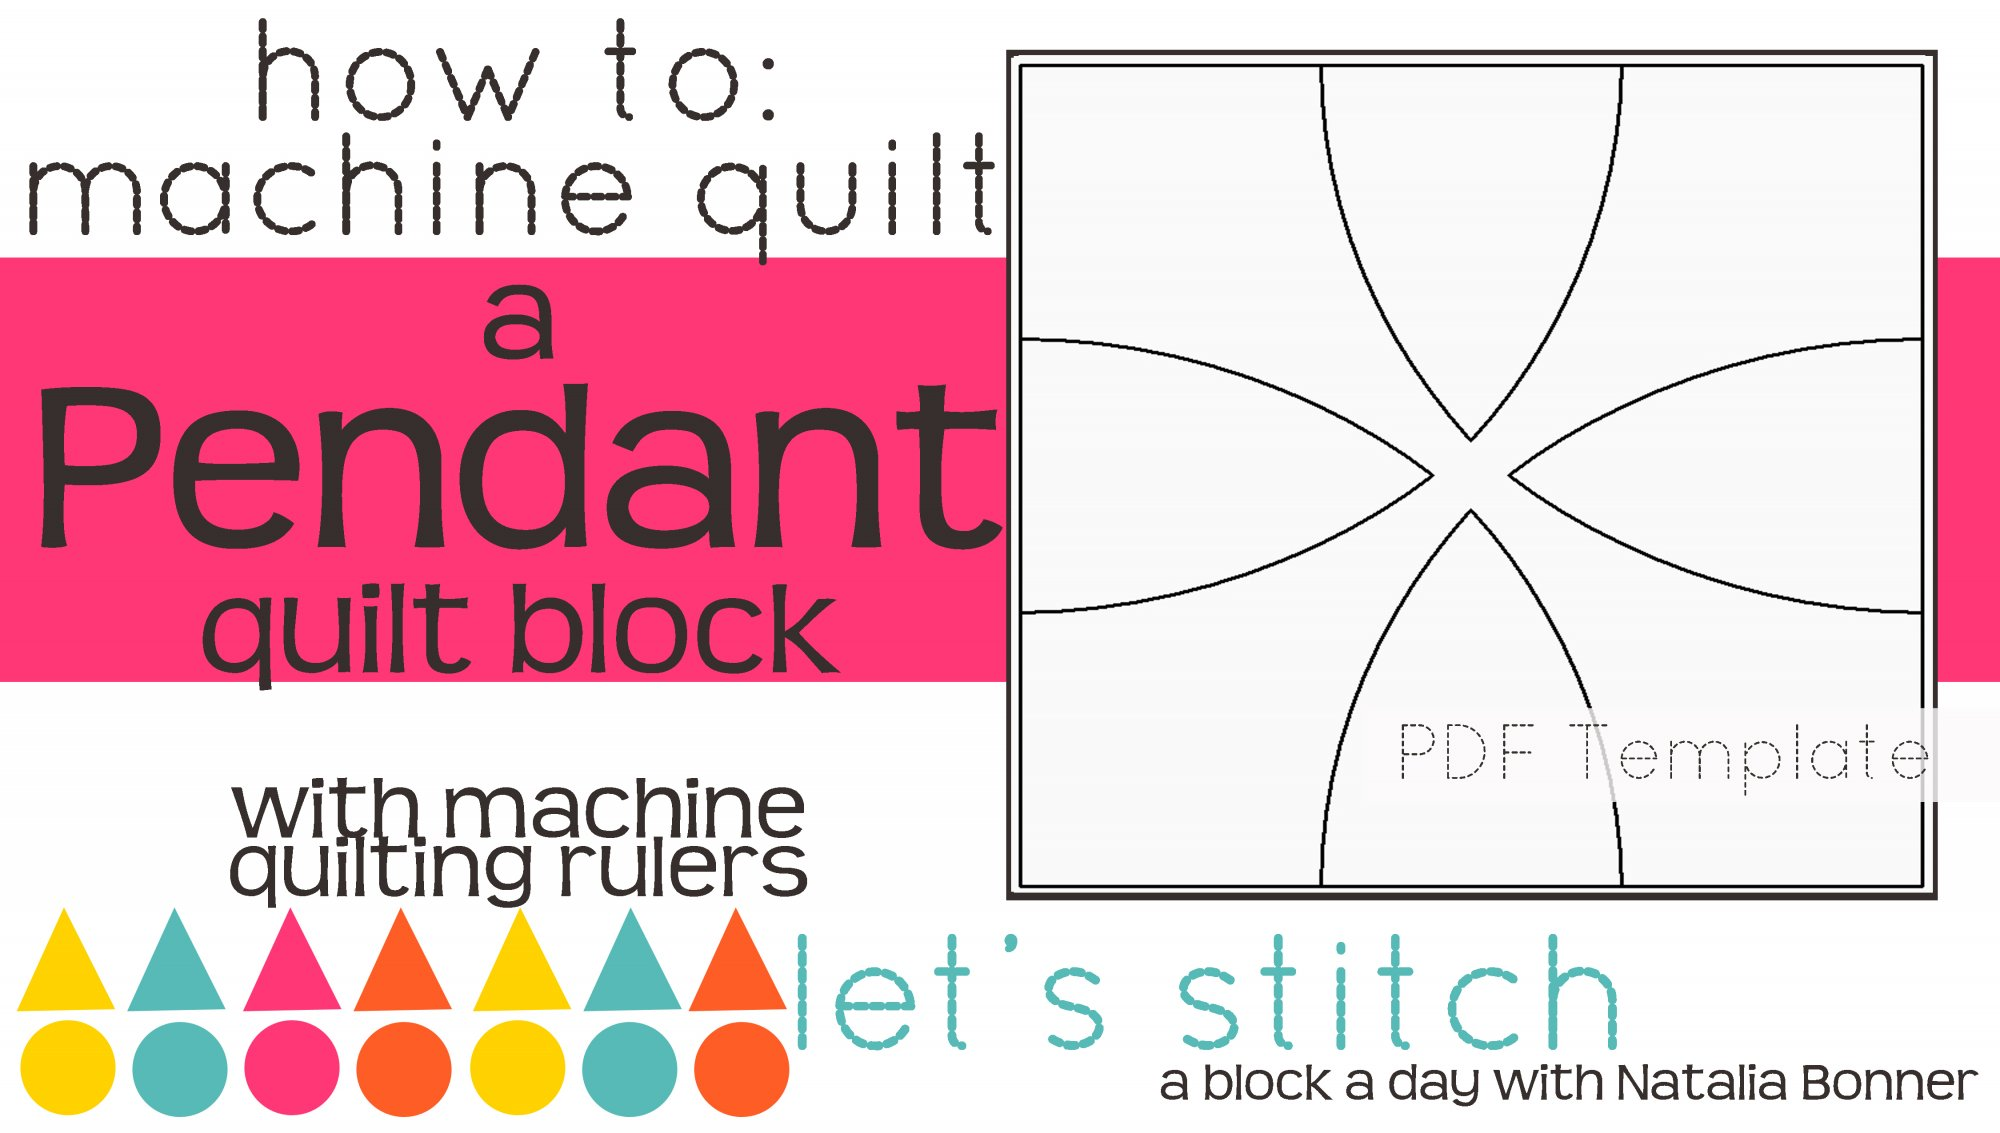 Let's Stitch - A Block a Day With Natalia Bonner - PDF - Pendant